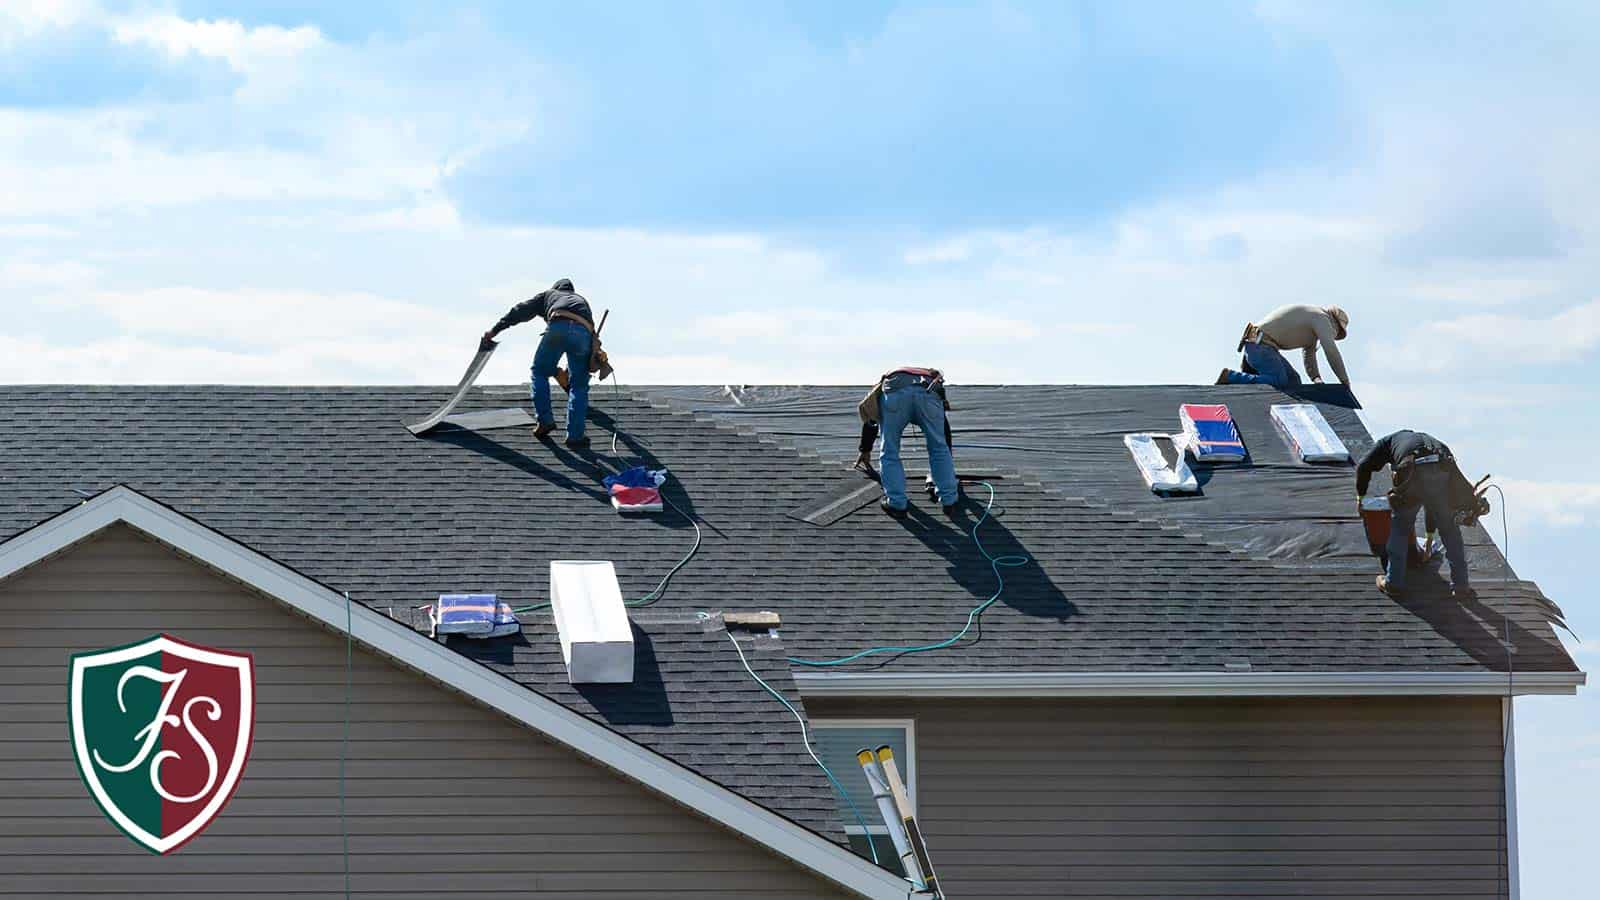 Replacing or repairing composition shingles isn't too difficult, but you still might want to use professional roofing contractors, especially for bigger jobs.